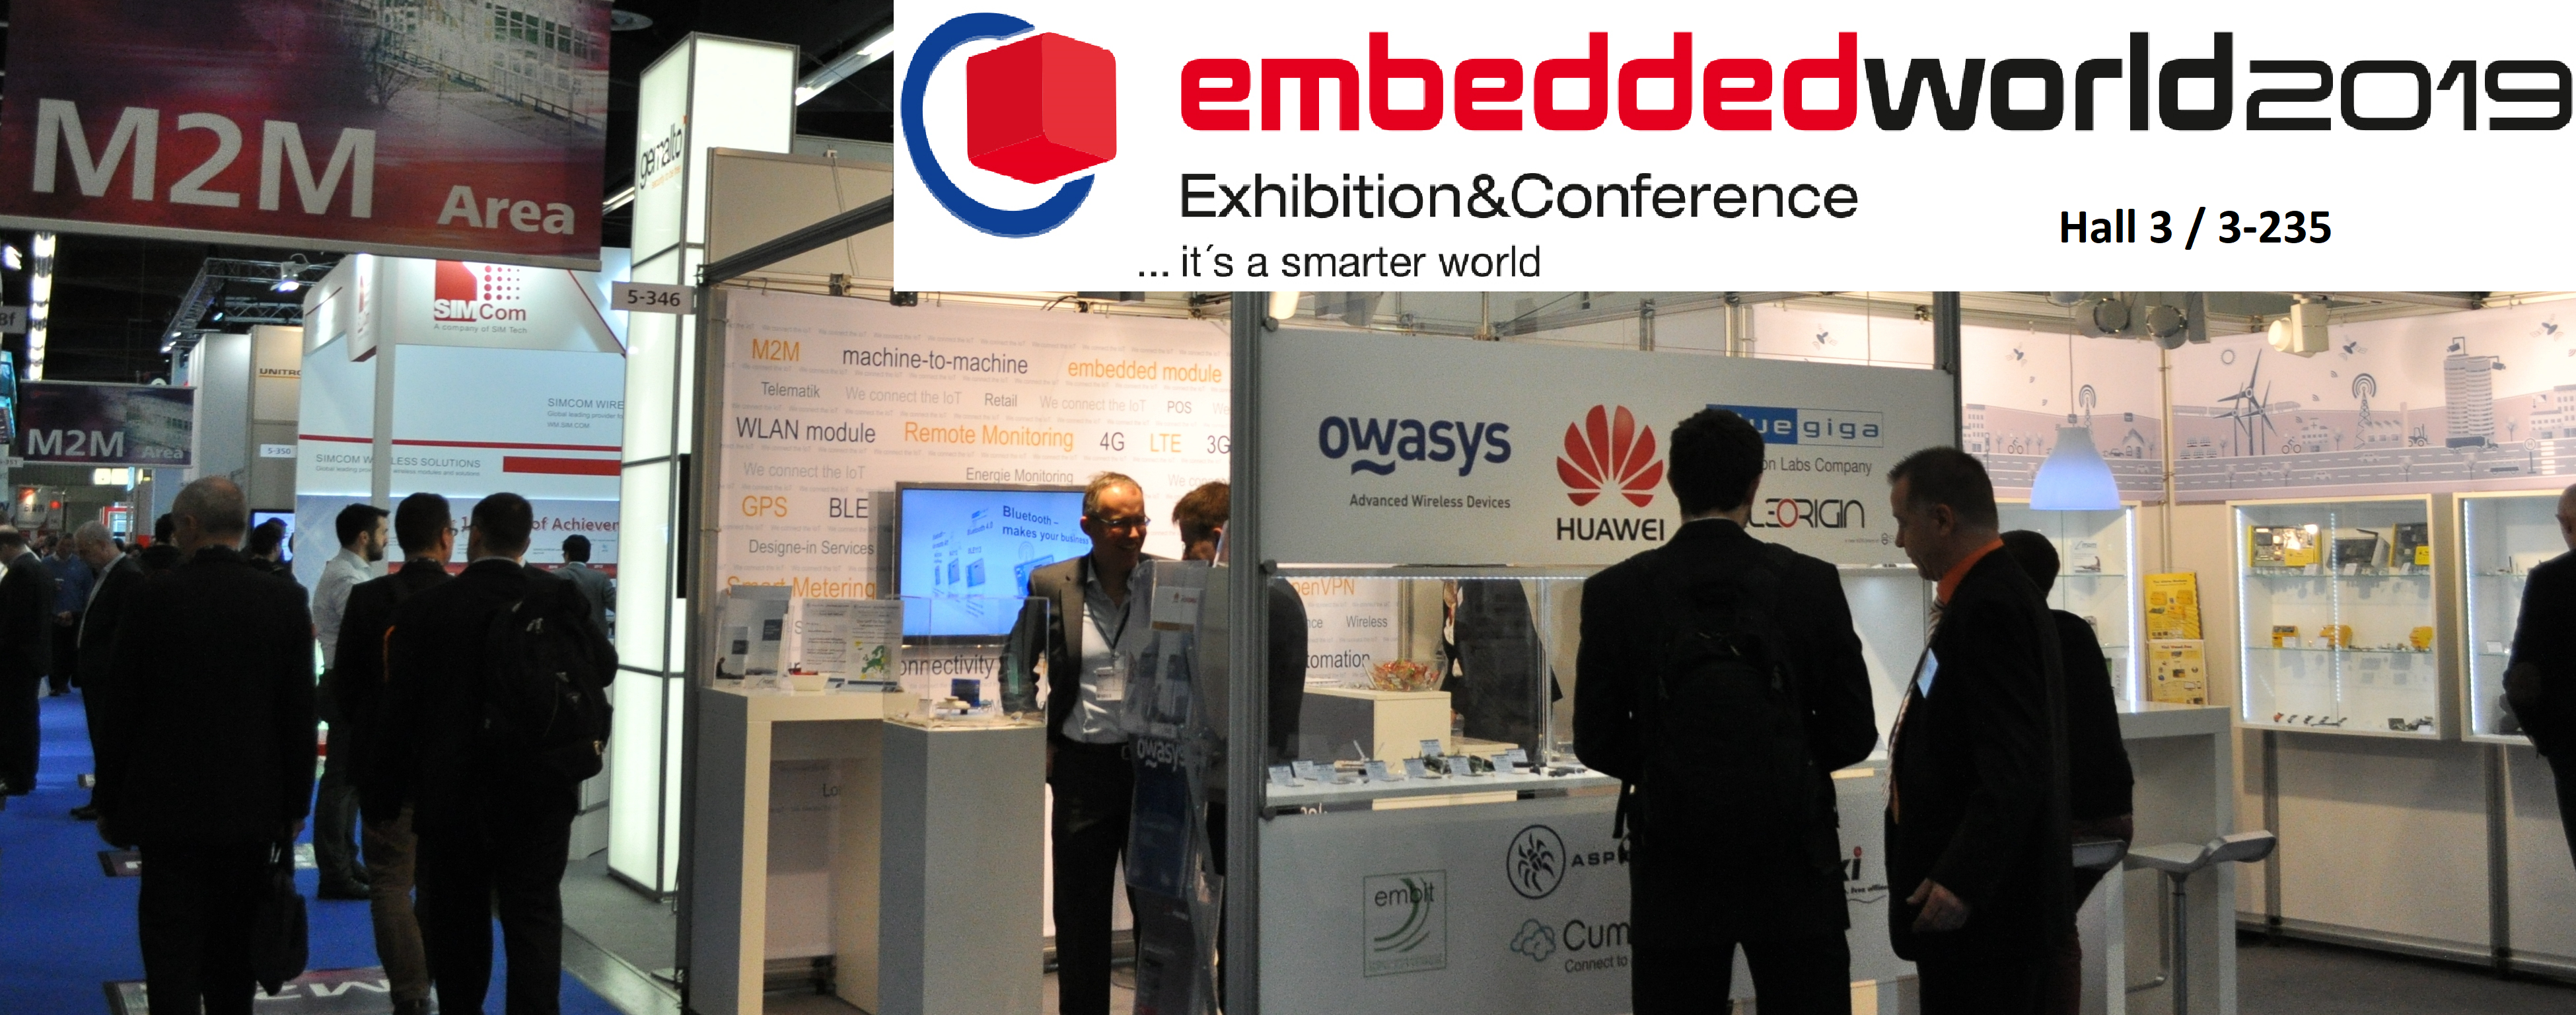 Owasys will be at the Embedded World 2019 presenting the latest News on Linux Embedded Devices.